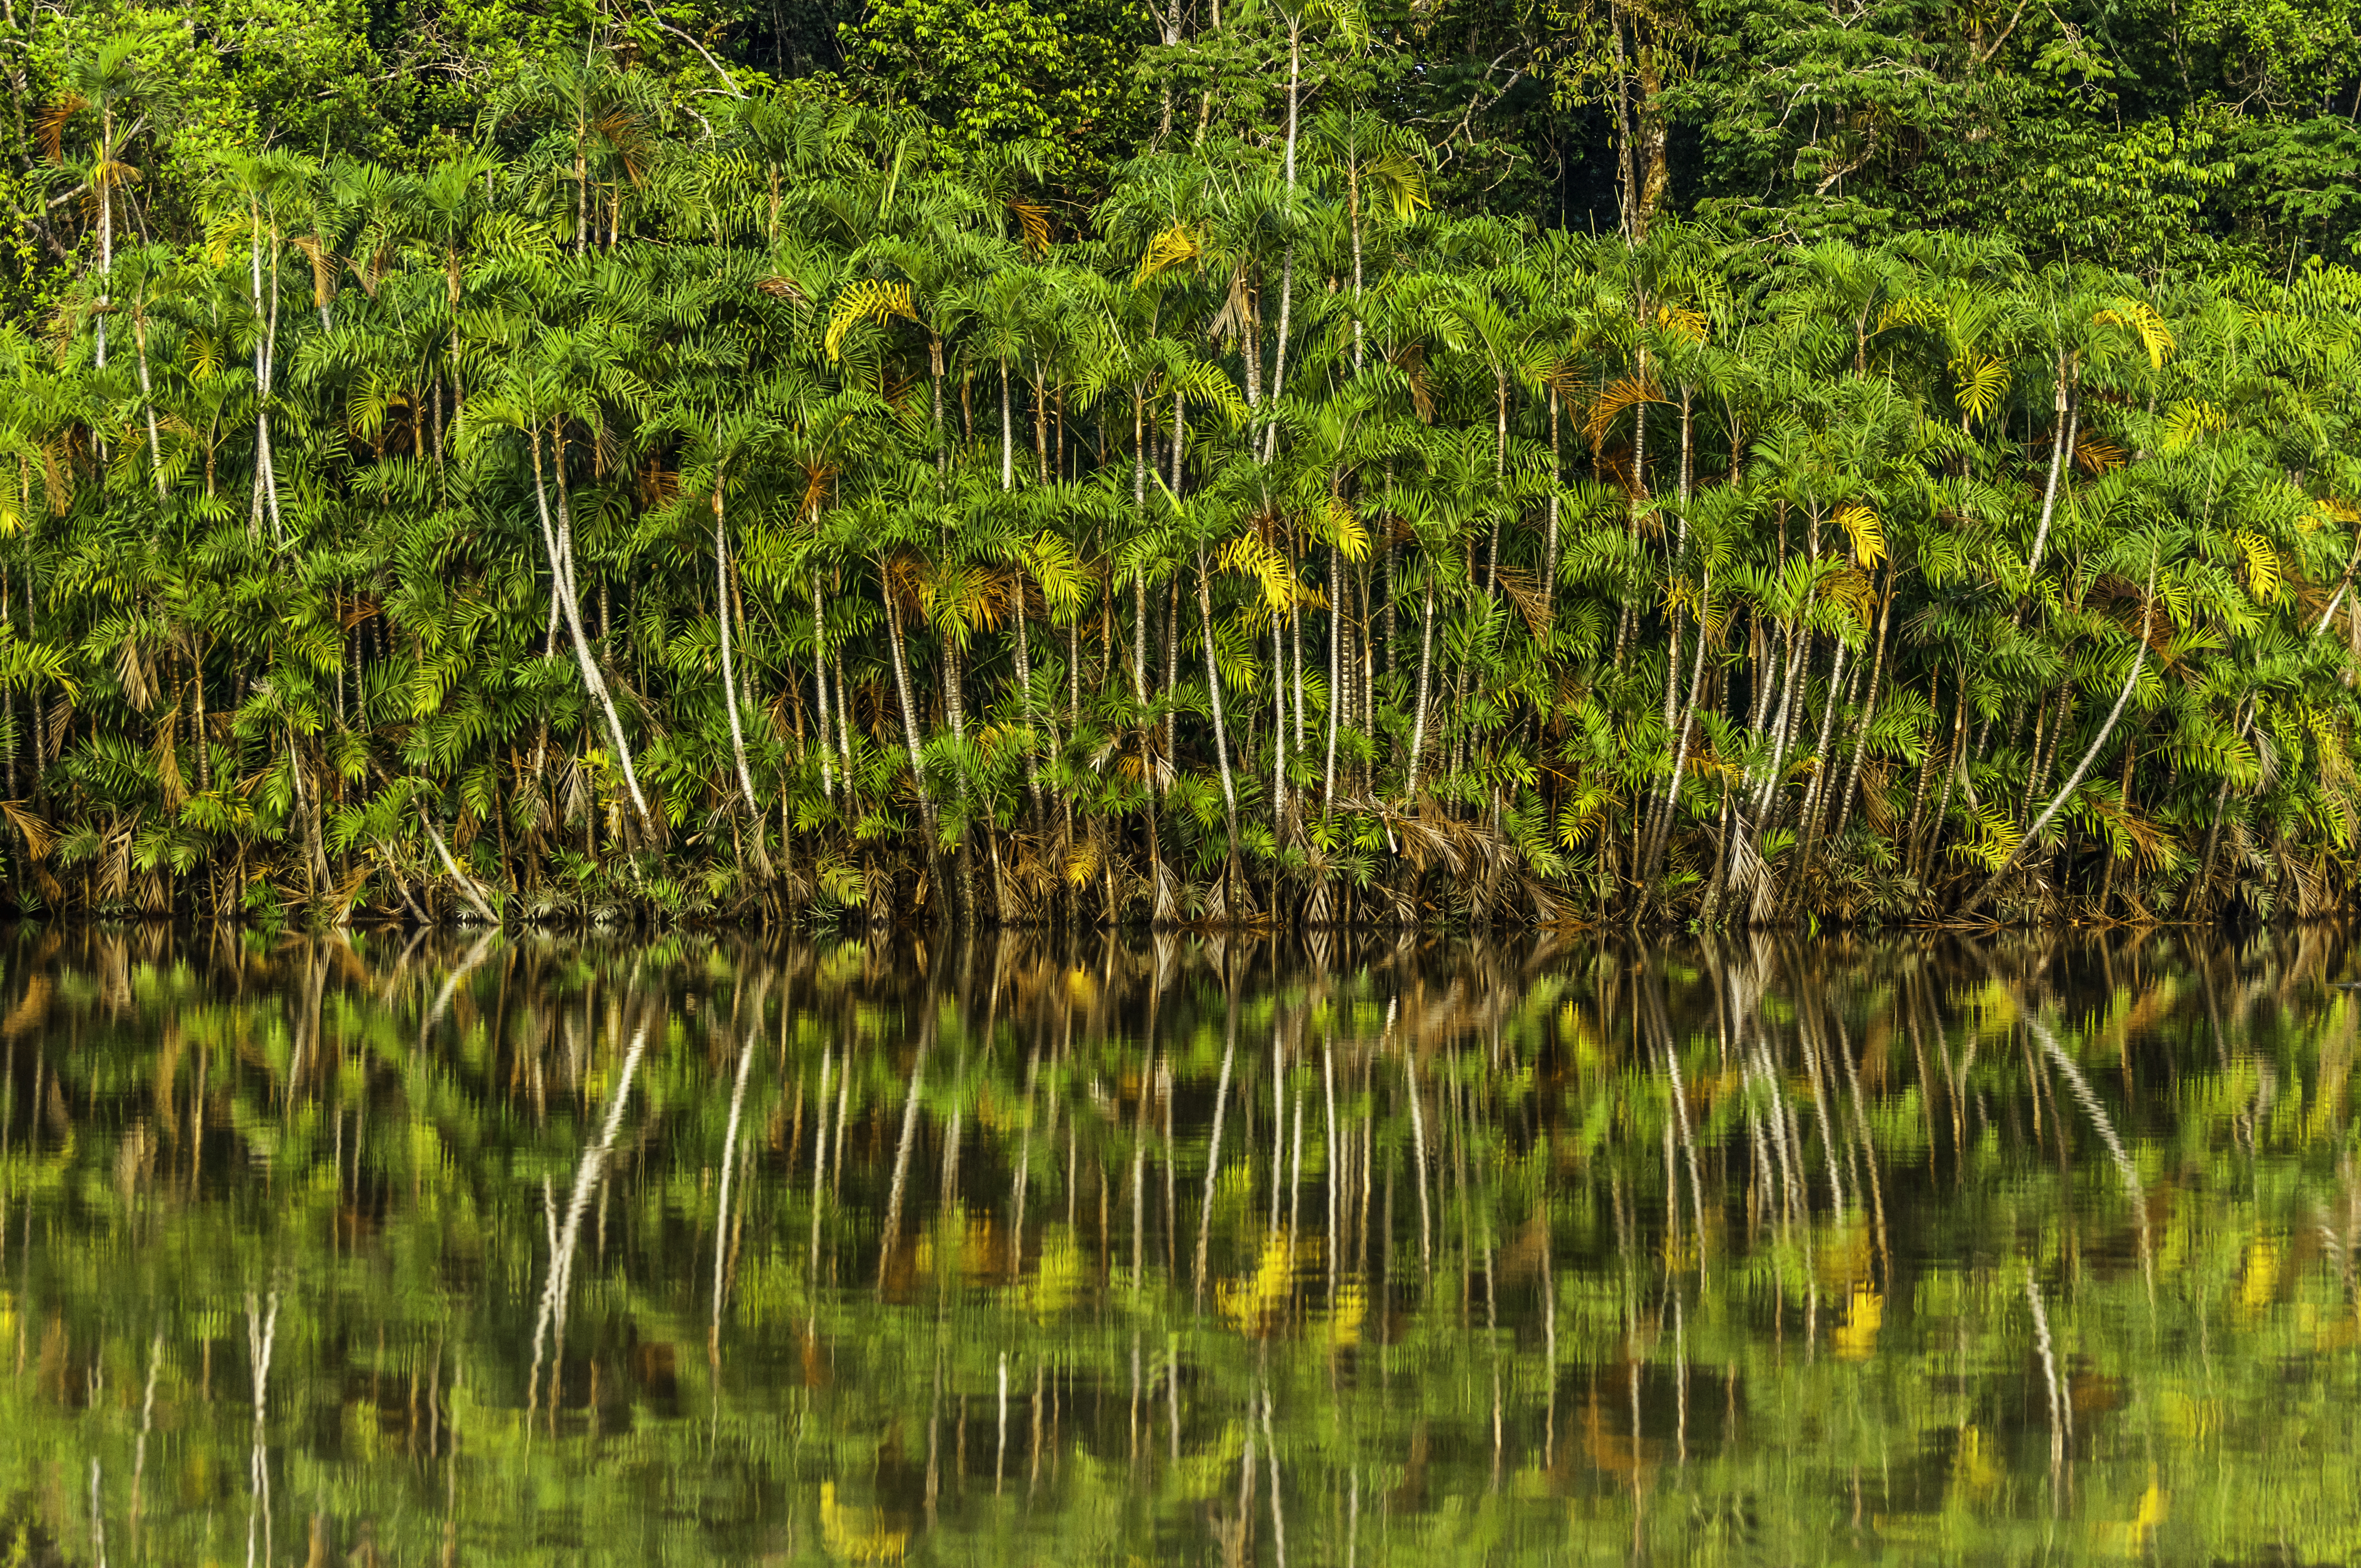 Reflection of the Amazon forests on Laguna Panacocha